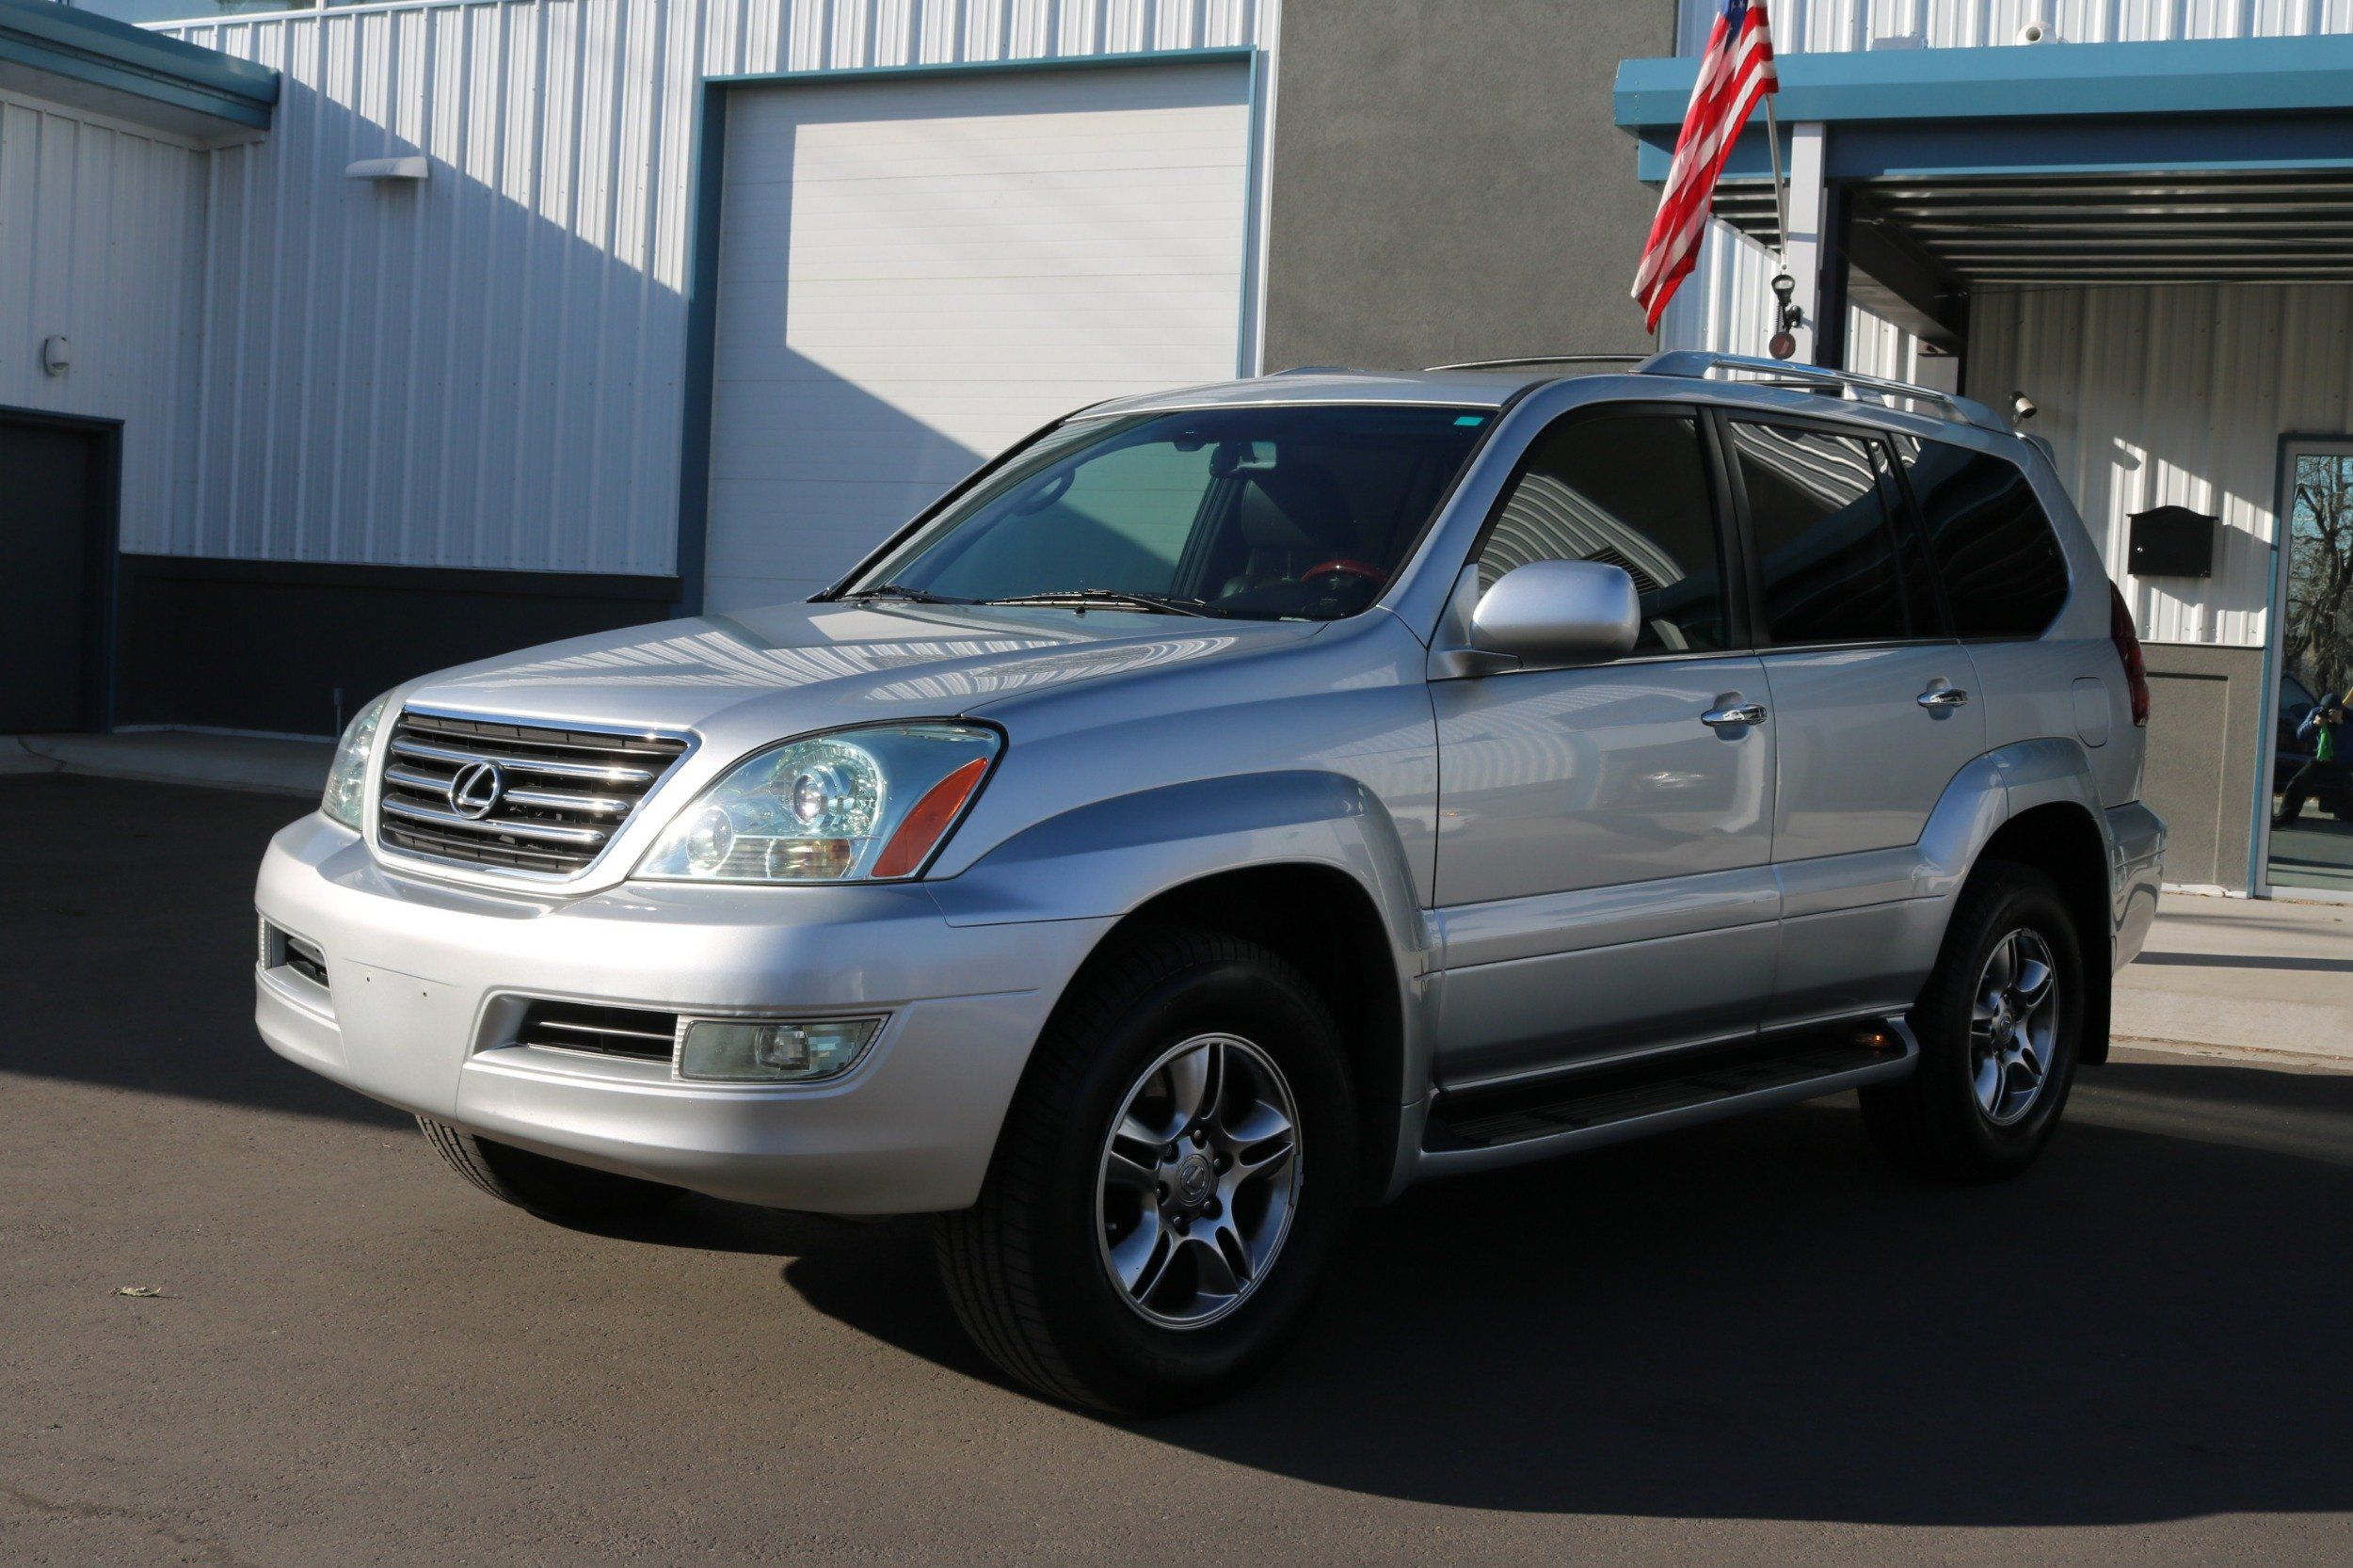 Inventory Epic Autos White 2004 Toyota Sequoia Off Road 2008 Lexus Gx 470